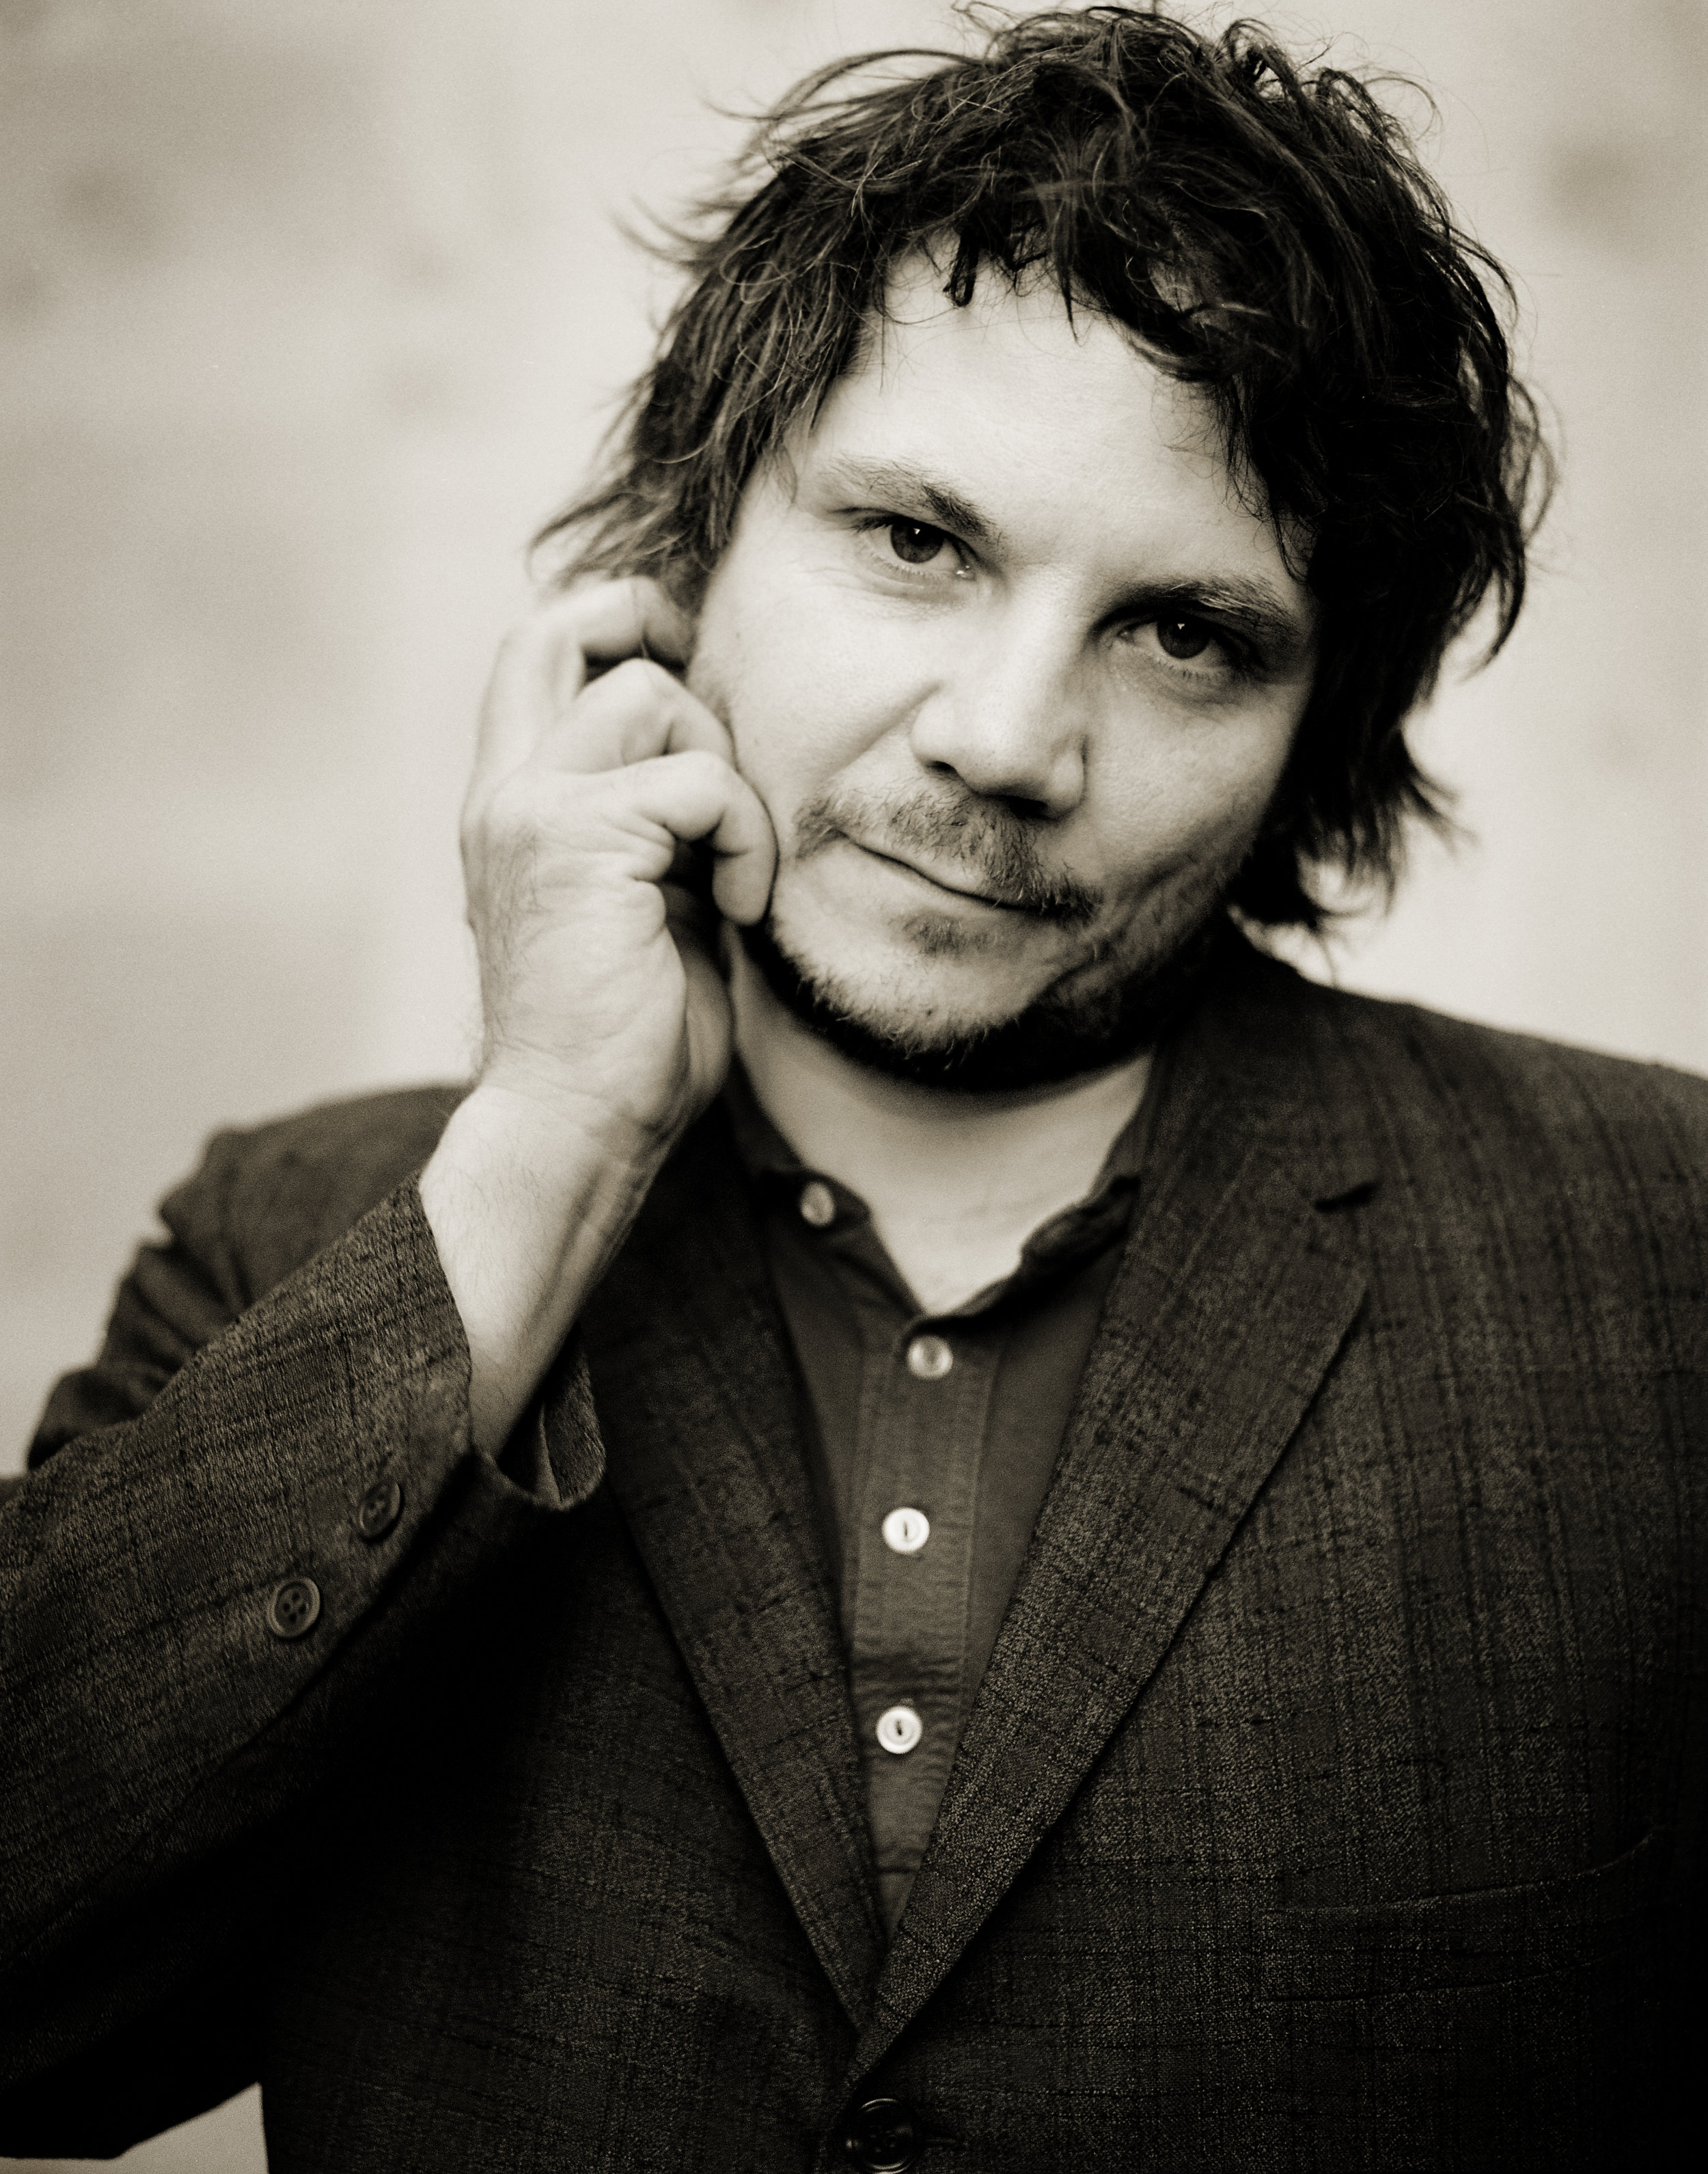 Jeff Tweedy (Wilco), Asheville, 2006